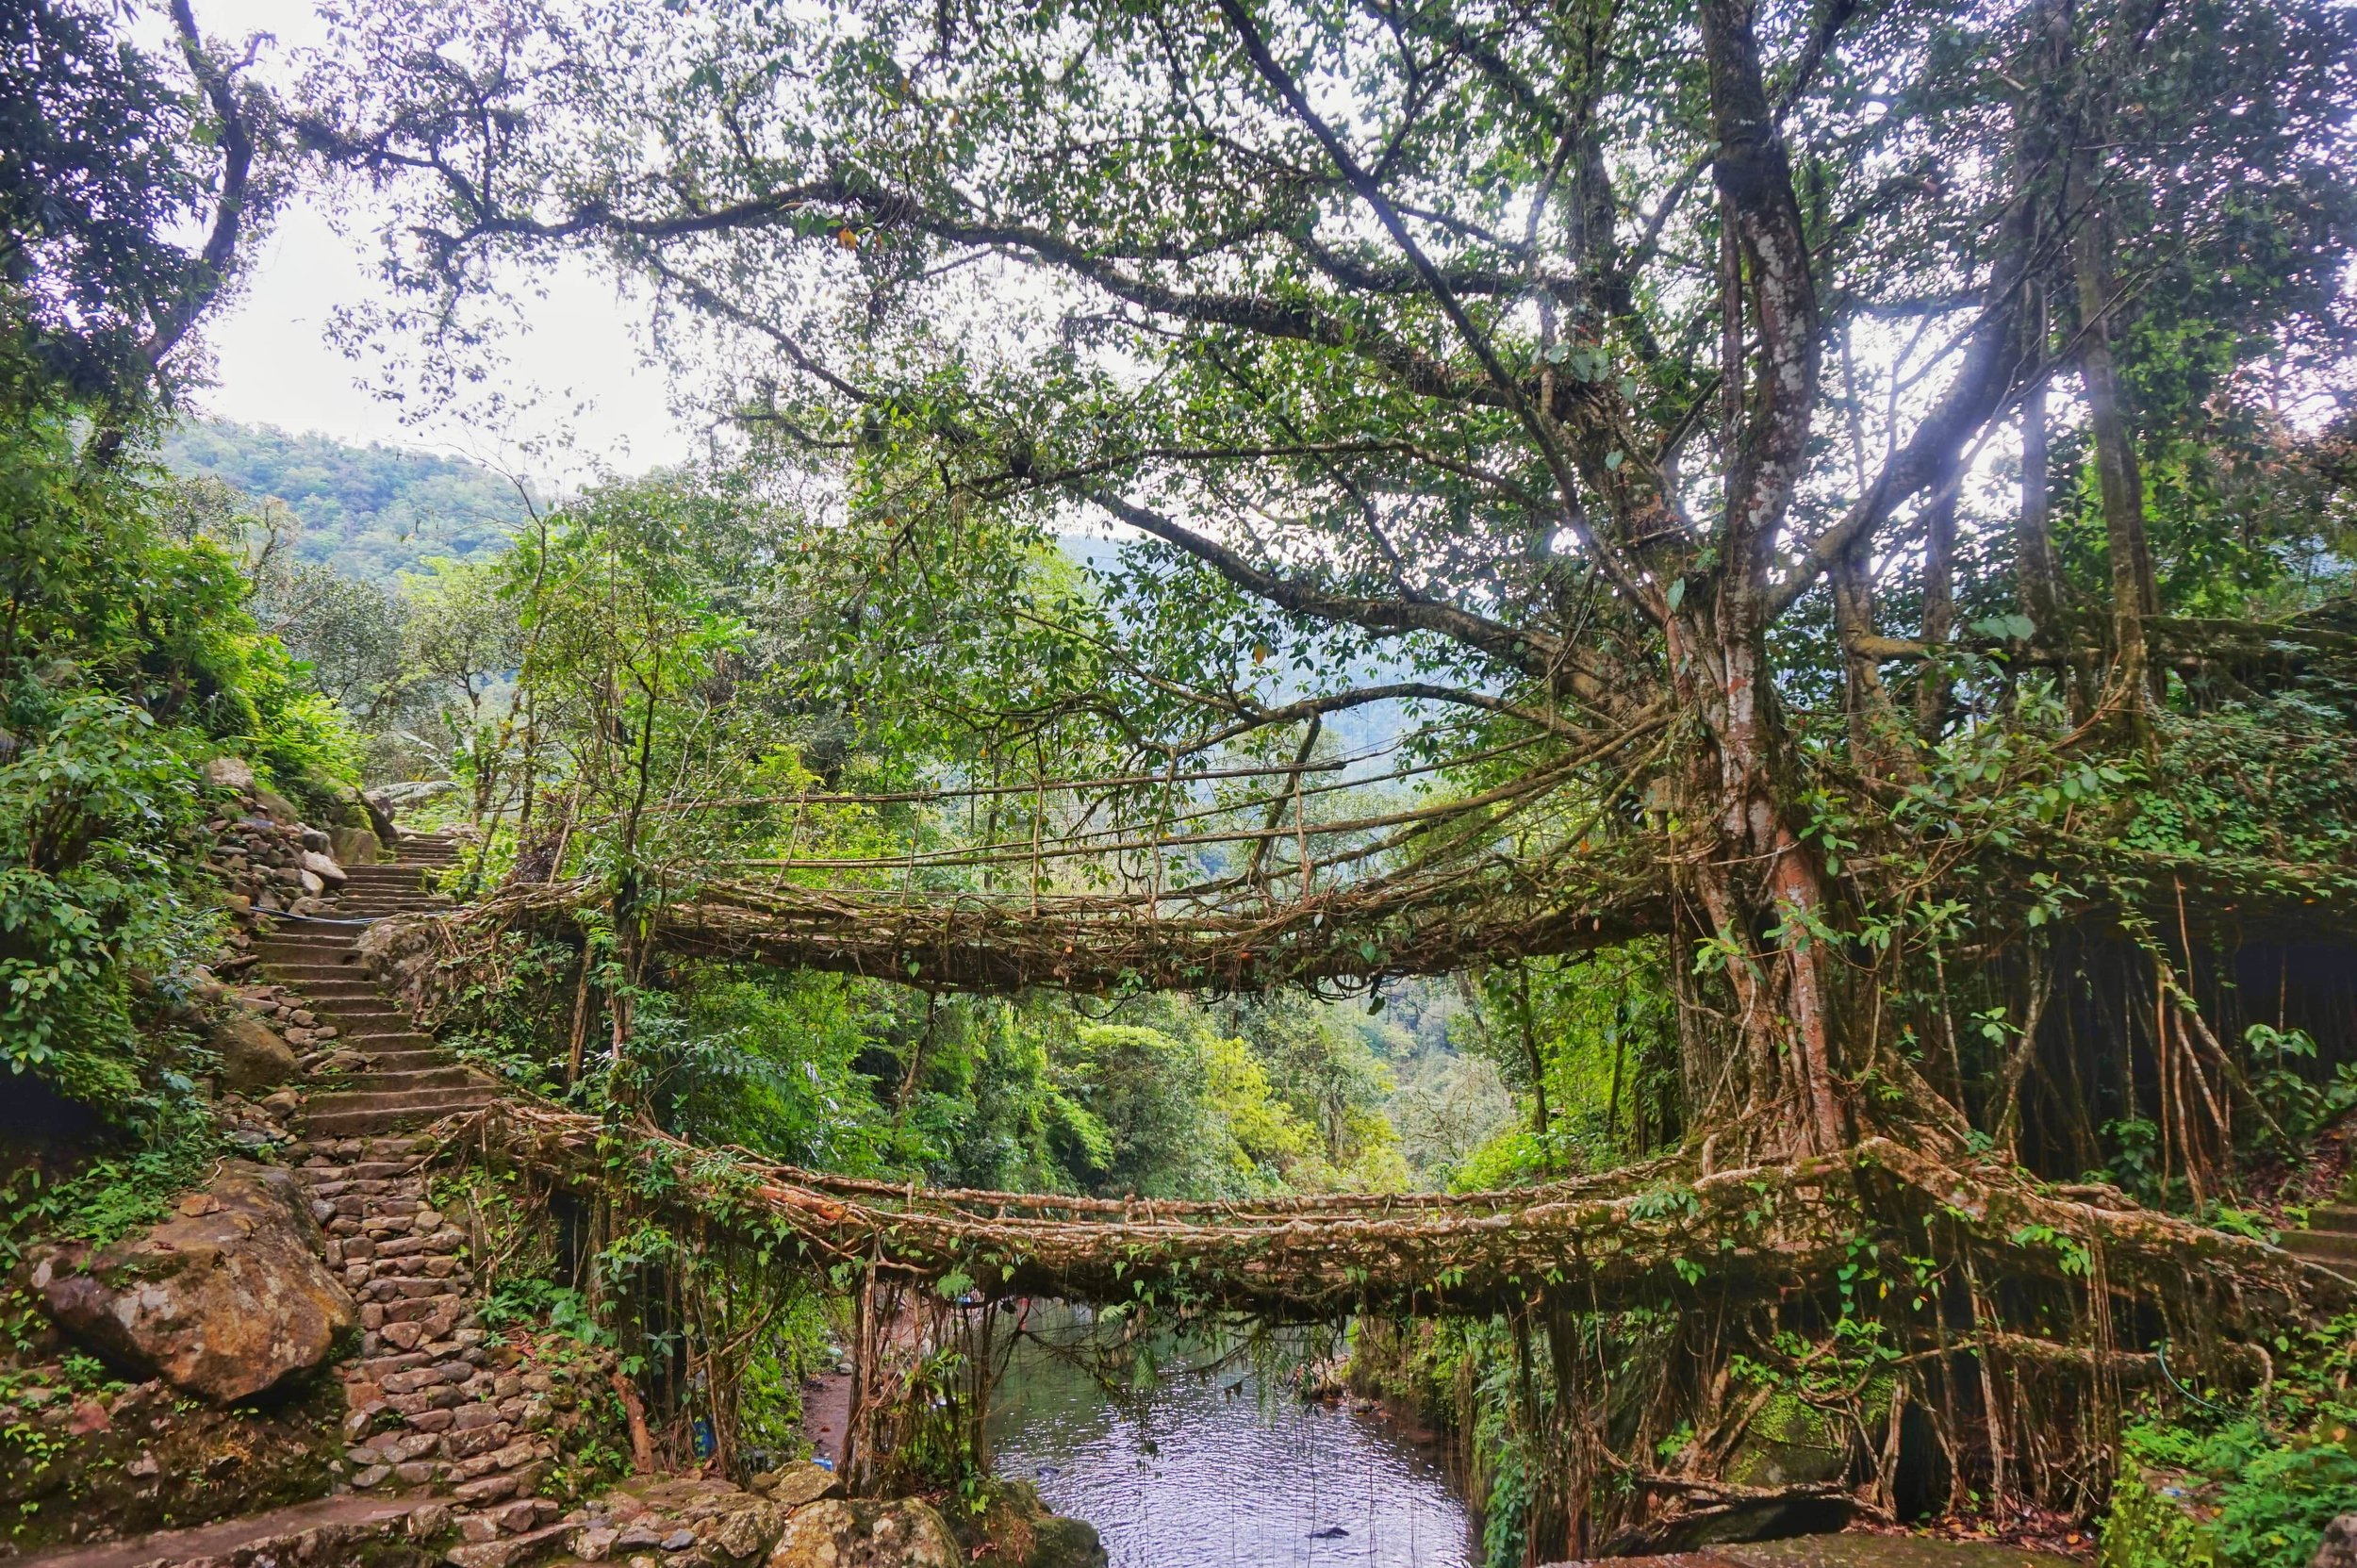 The biggest attraction in Meghalaya are the living root bridges in the jungle in Nongriat. The root bridges are a must visit place while backpacking in Meghalaya.